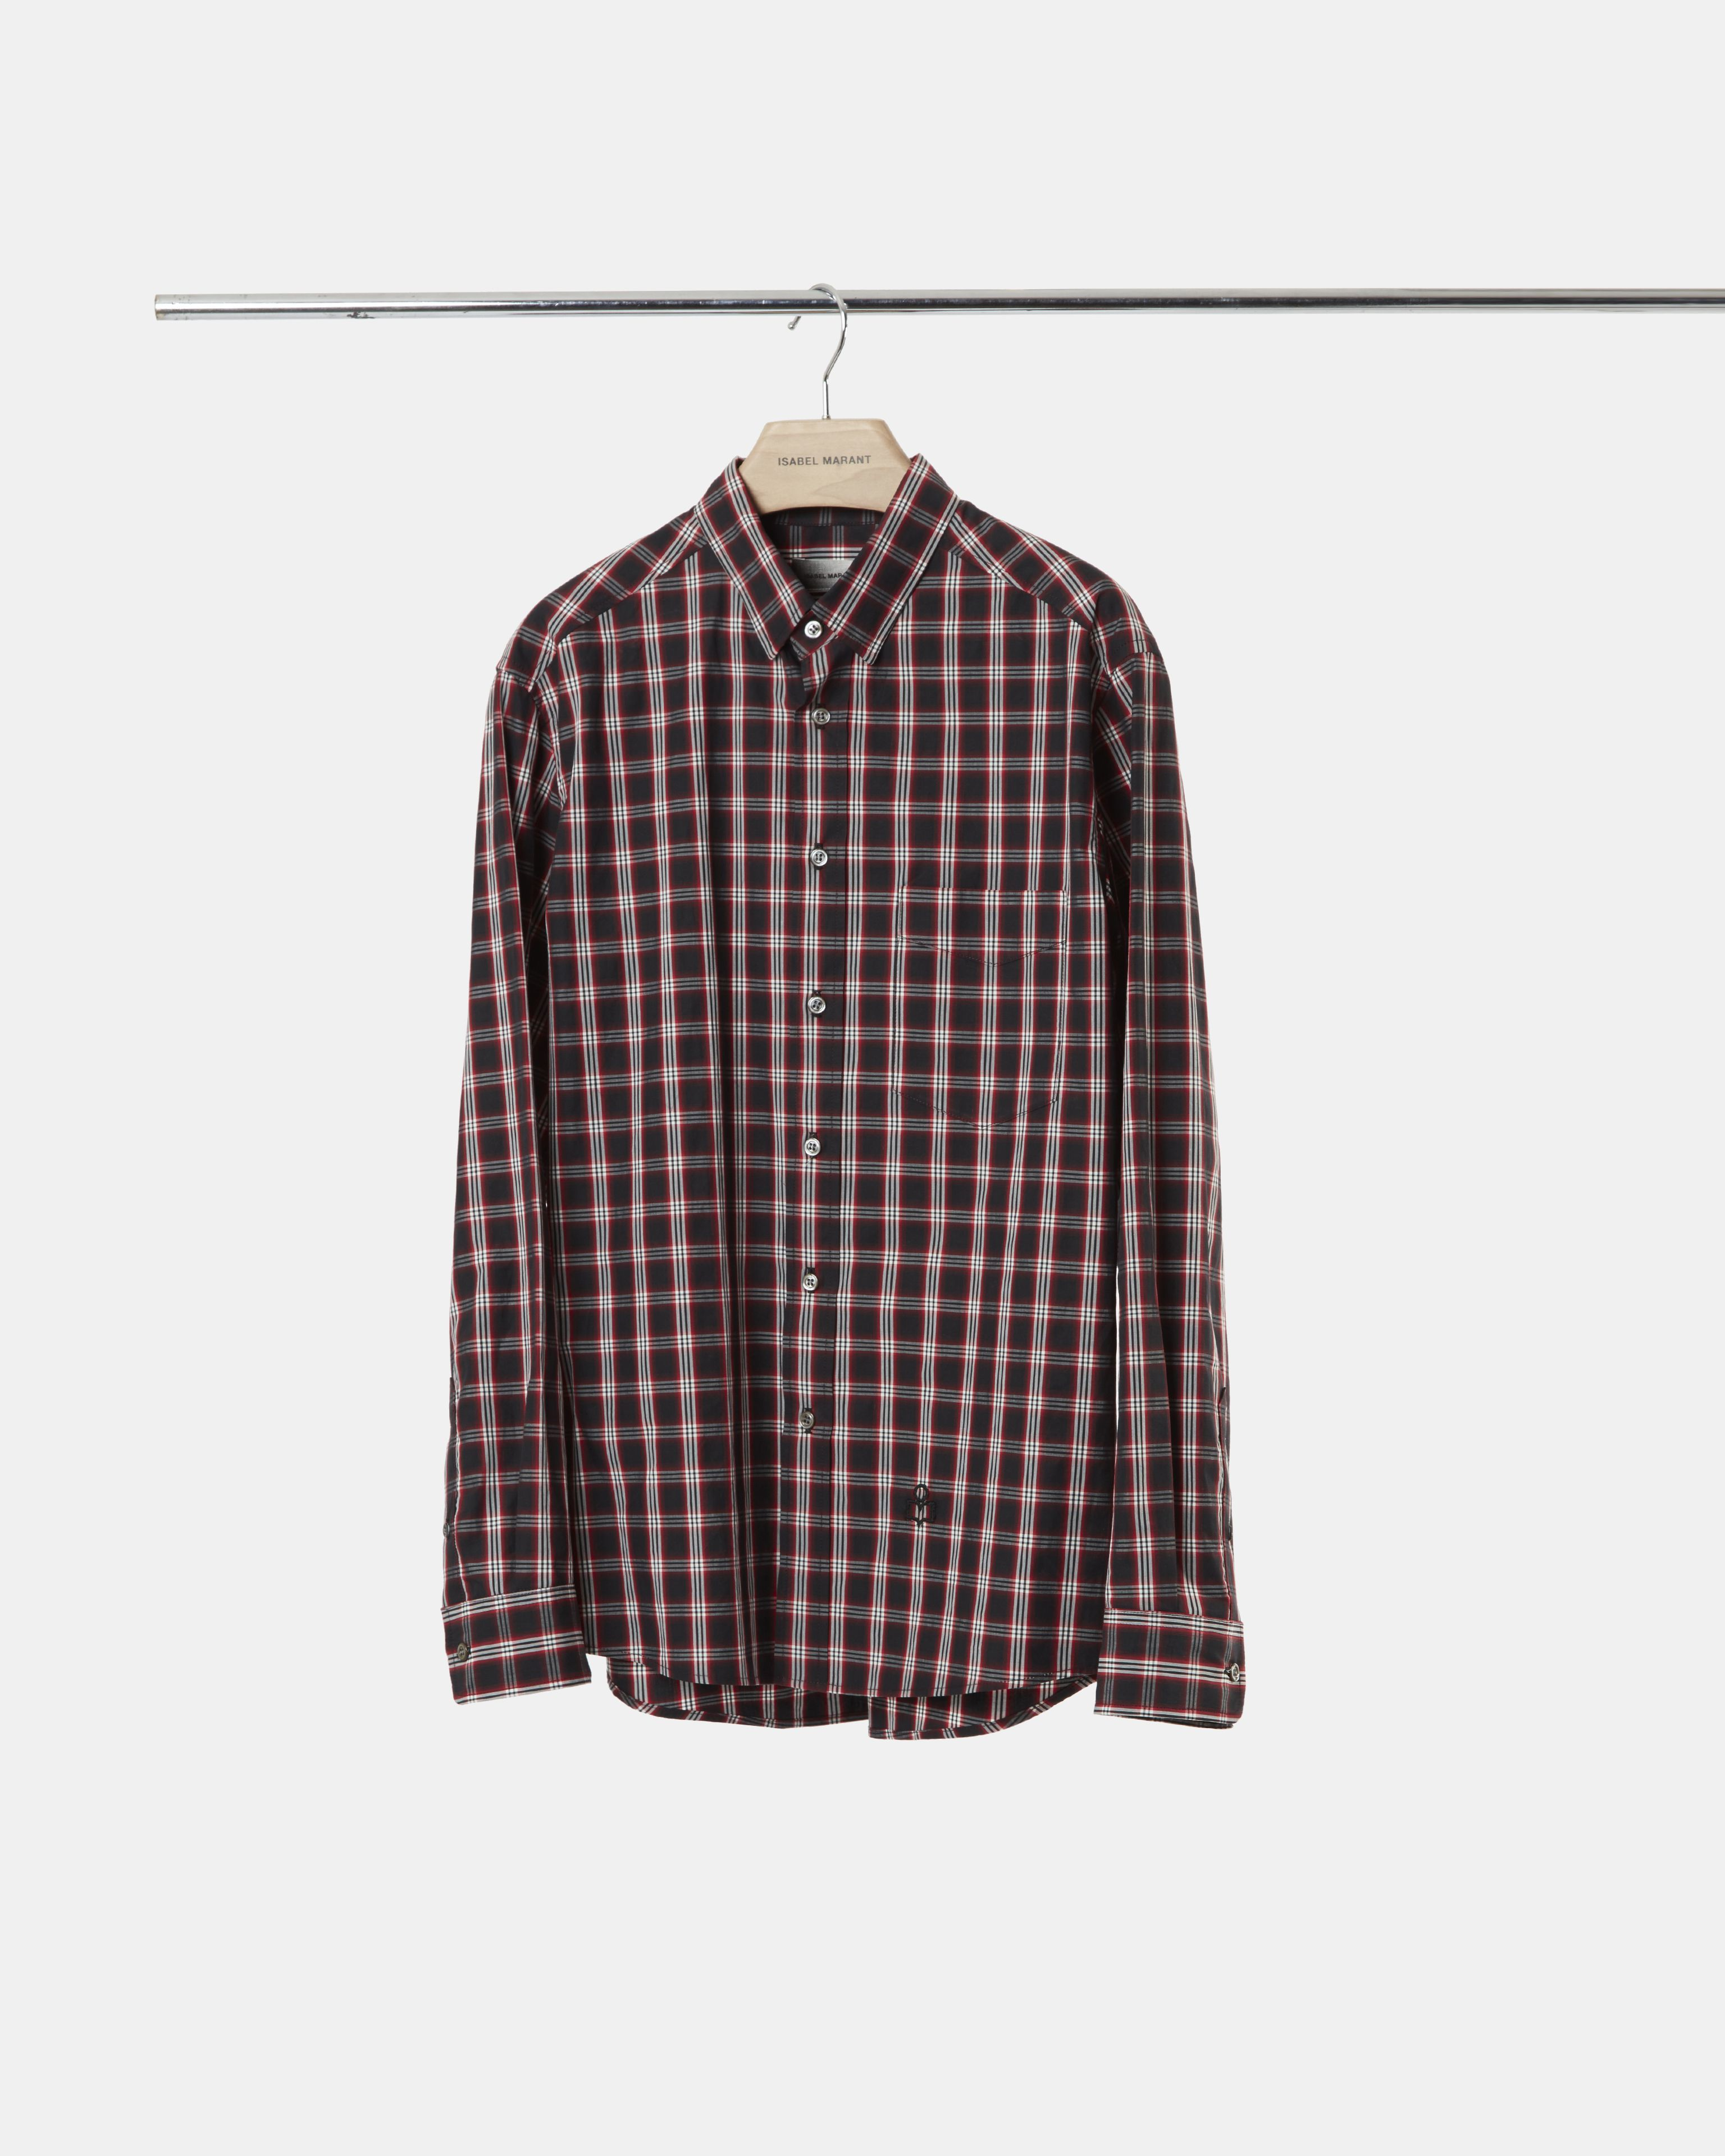 JASON checked shirt